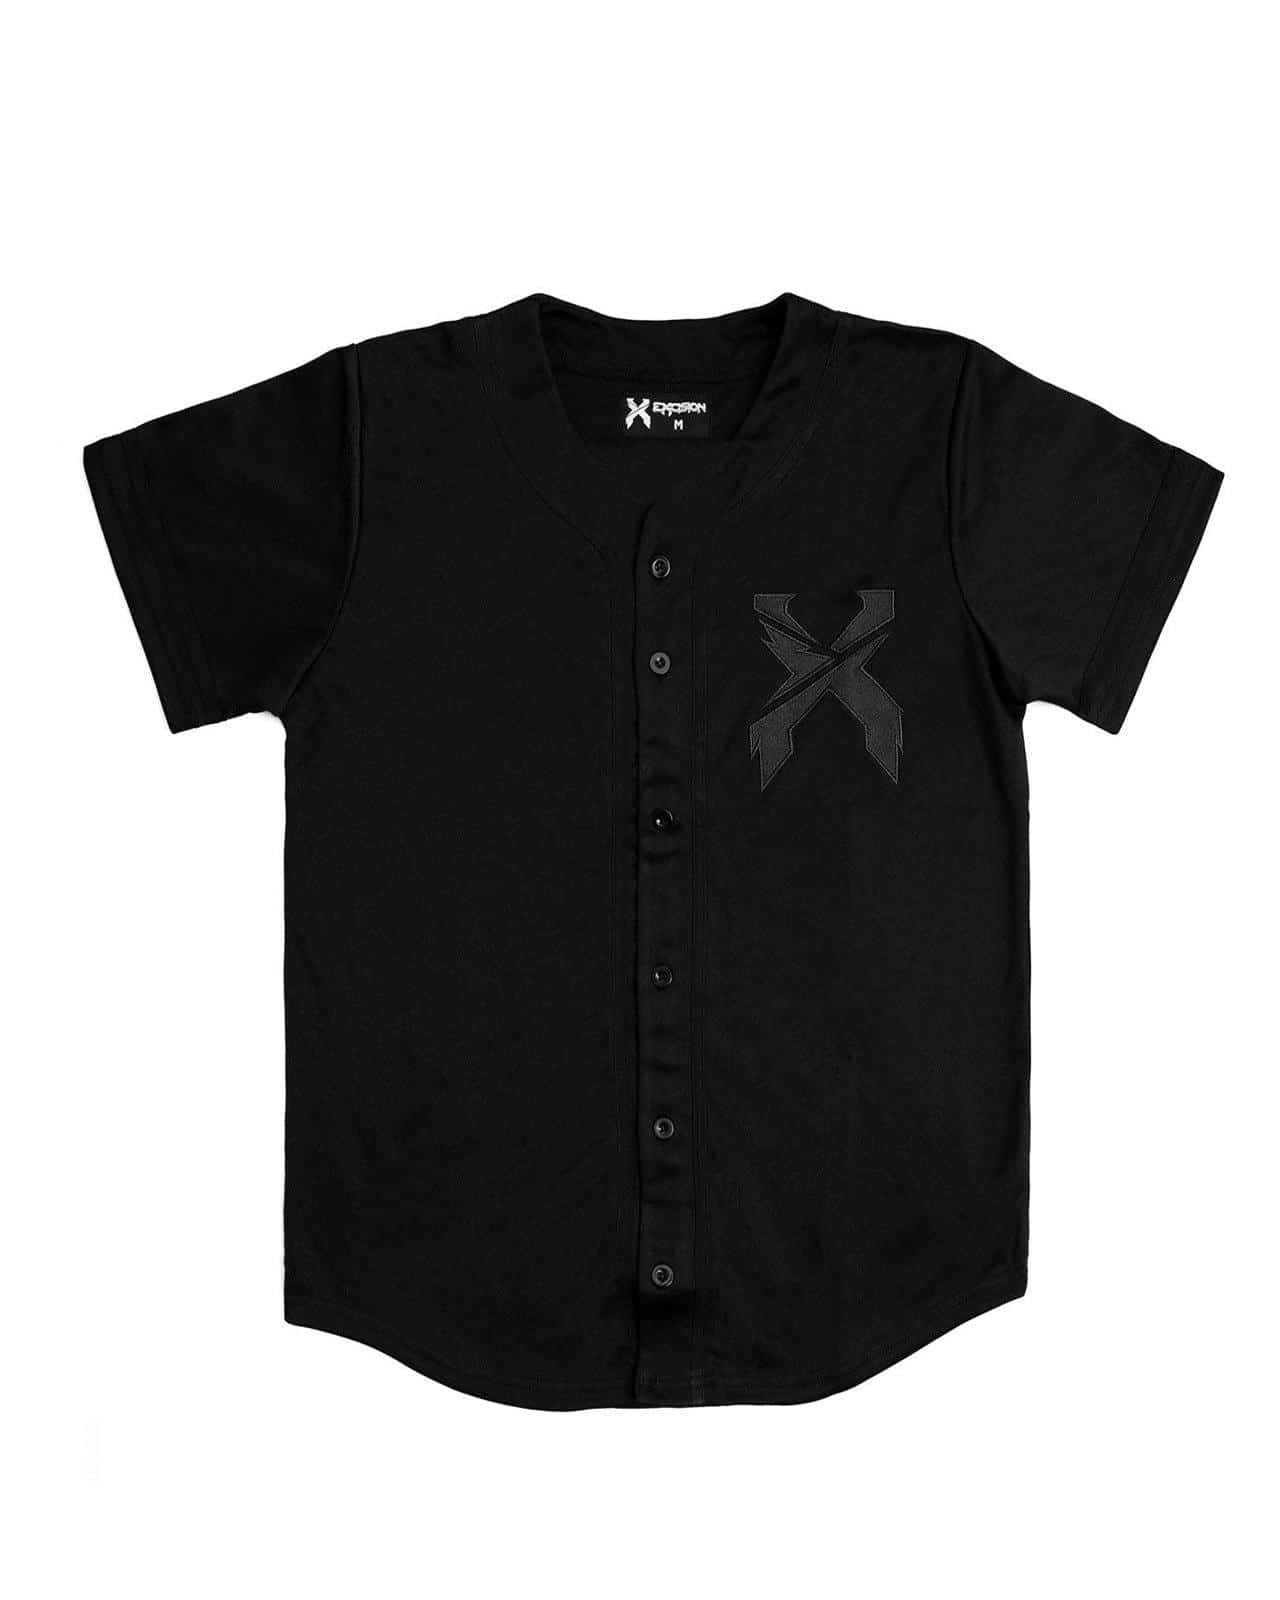 Excision Baseball Jersey - Black/Black